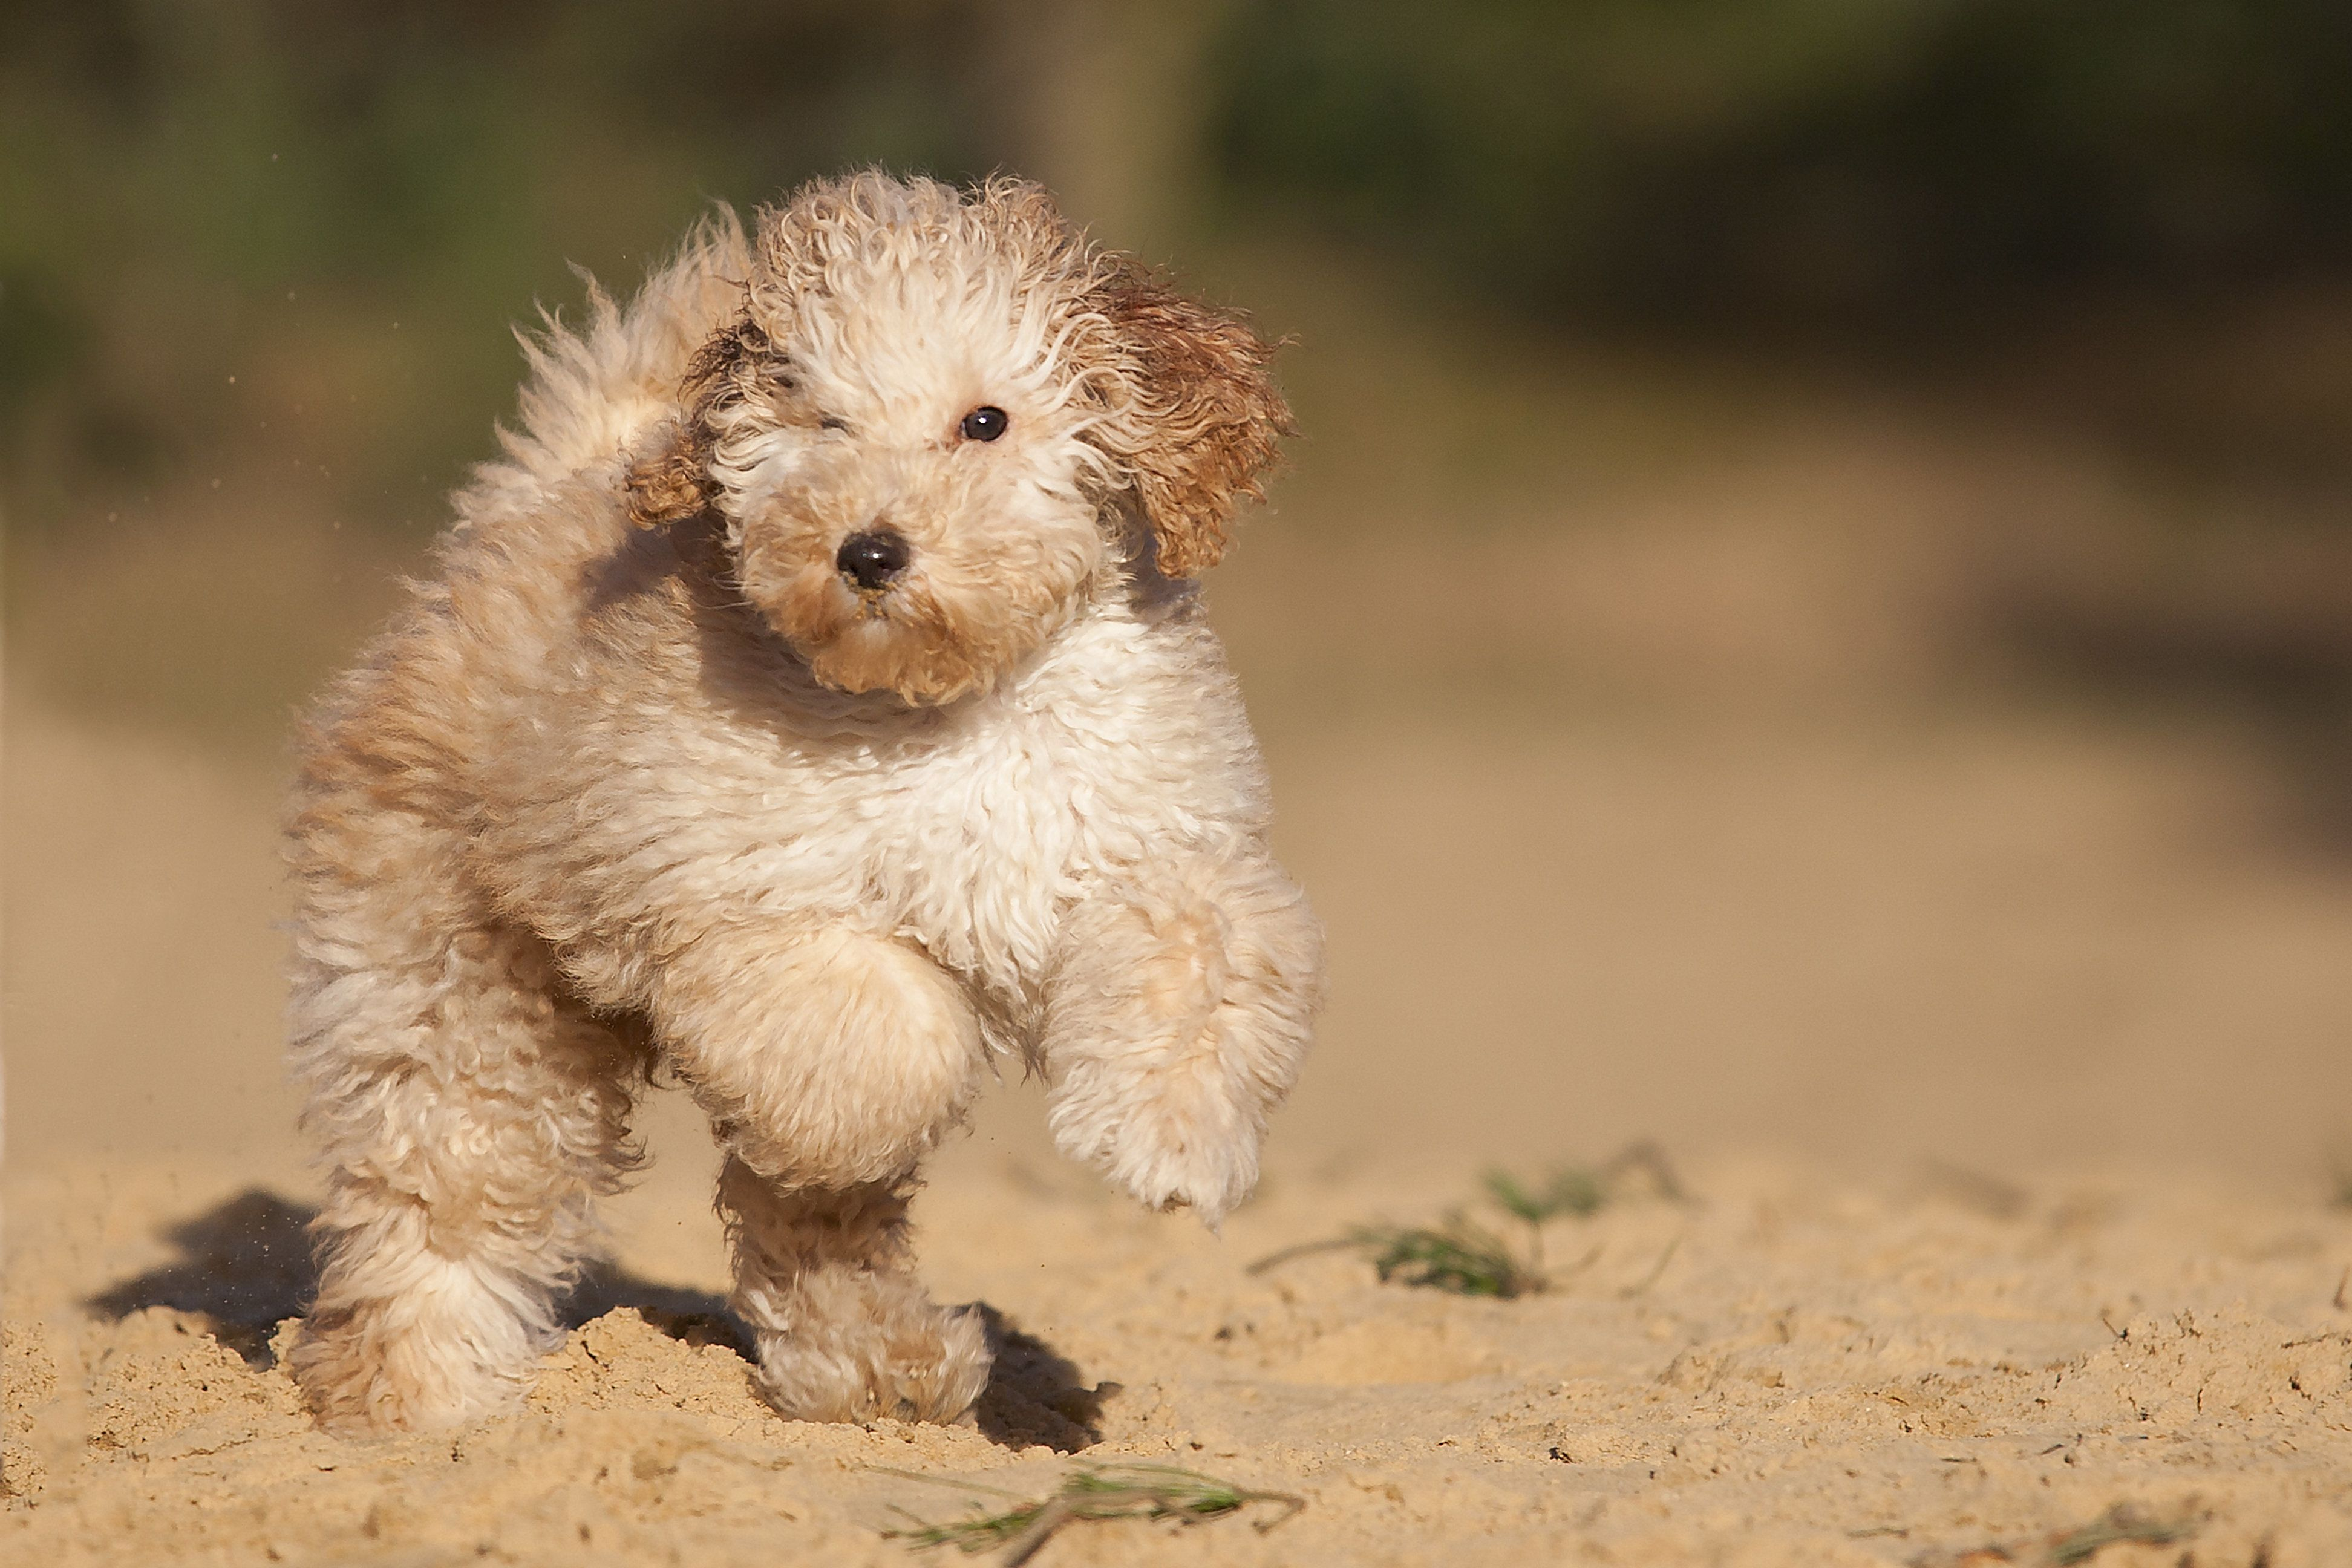 A Labradoodle puppy of 9 weeks on 2 legs standing!A mix of Labrador/Poodle.